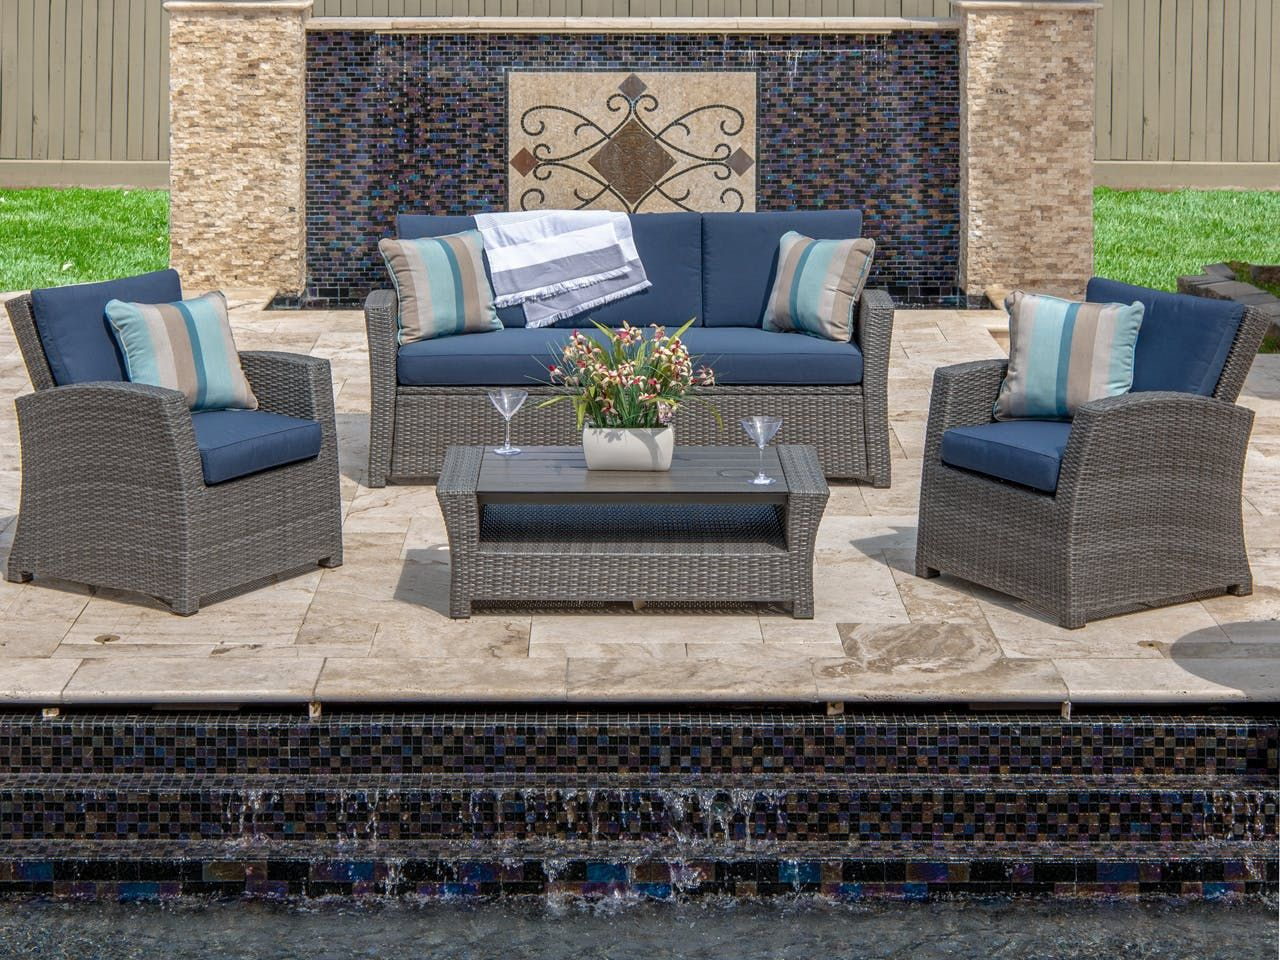 Br What S Included Br Sofa 2 Club Chair With Solution Dyed Olefin Navy Fabic Cushions And 41 X Wicker Sofa Outdoor Outdoor Wicker Outdoor Furniture Sets